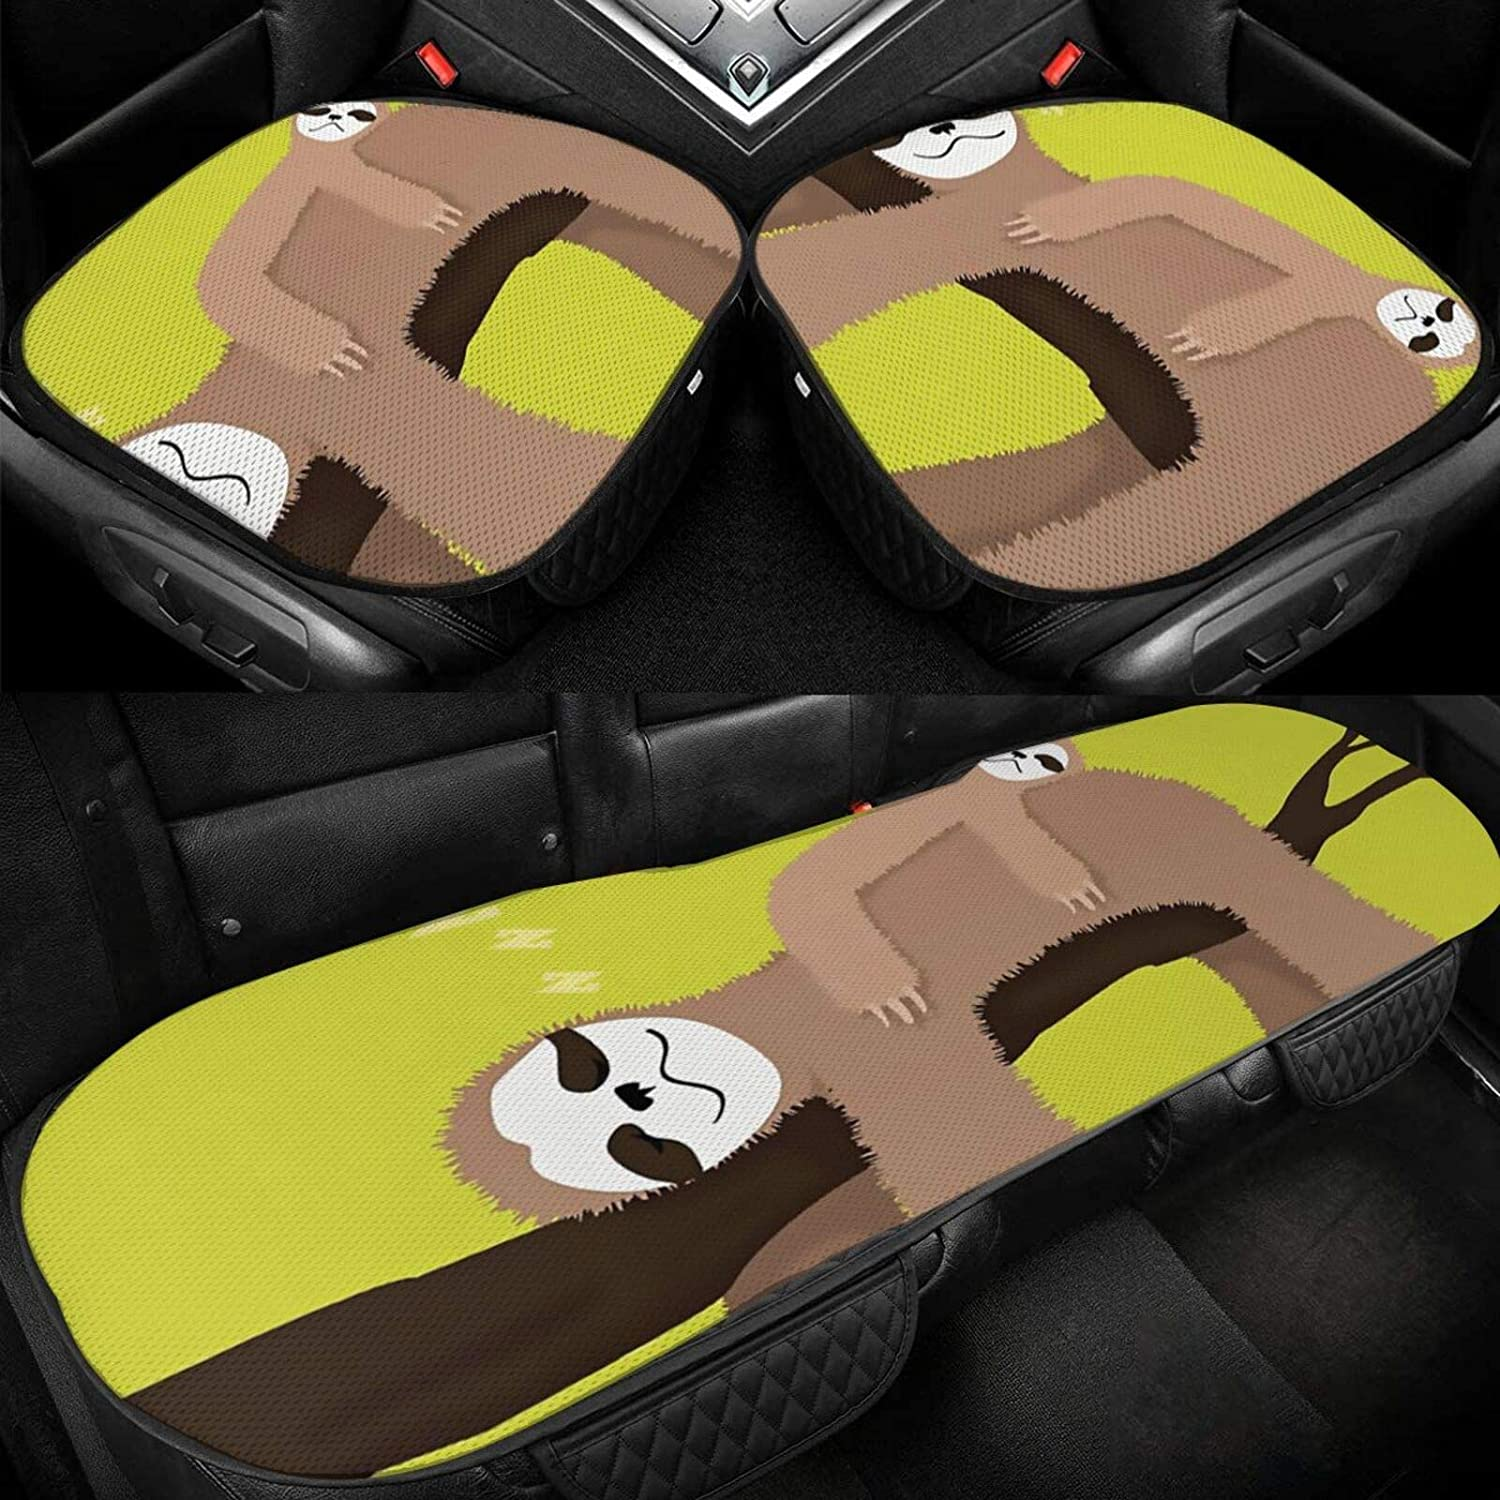 Car Seat Cushion Covers Cute Max 44% OFF Sleeping Sloth 5% OFF Cover Bottom fo